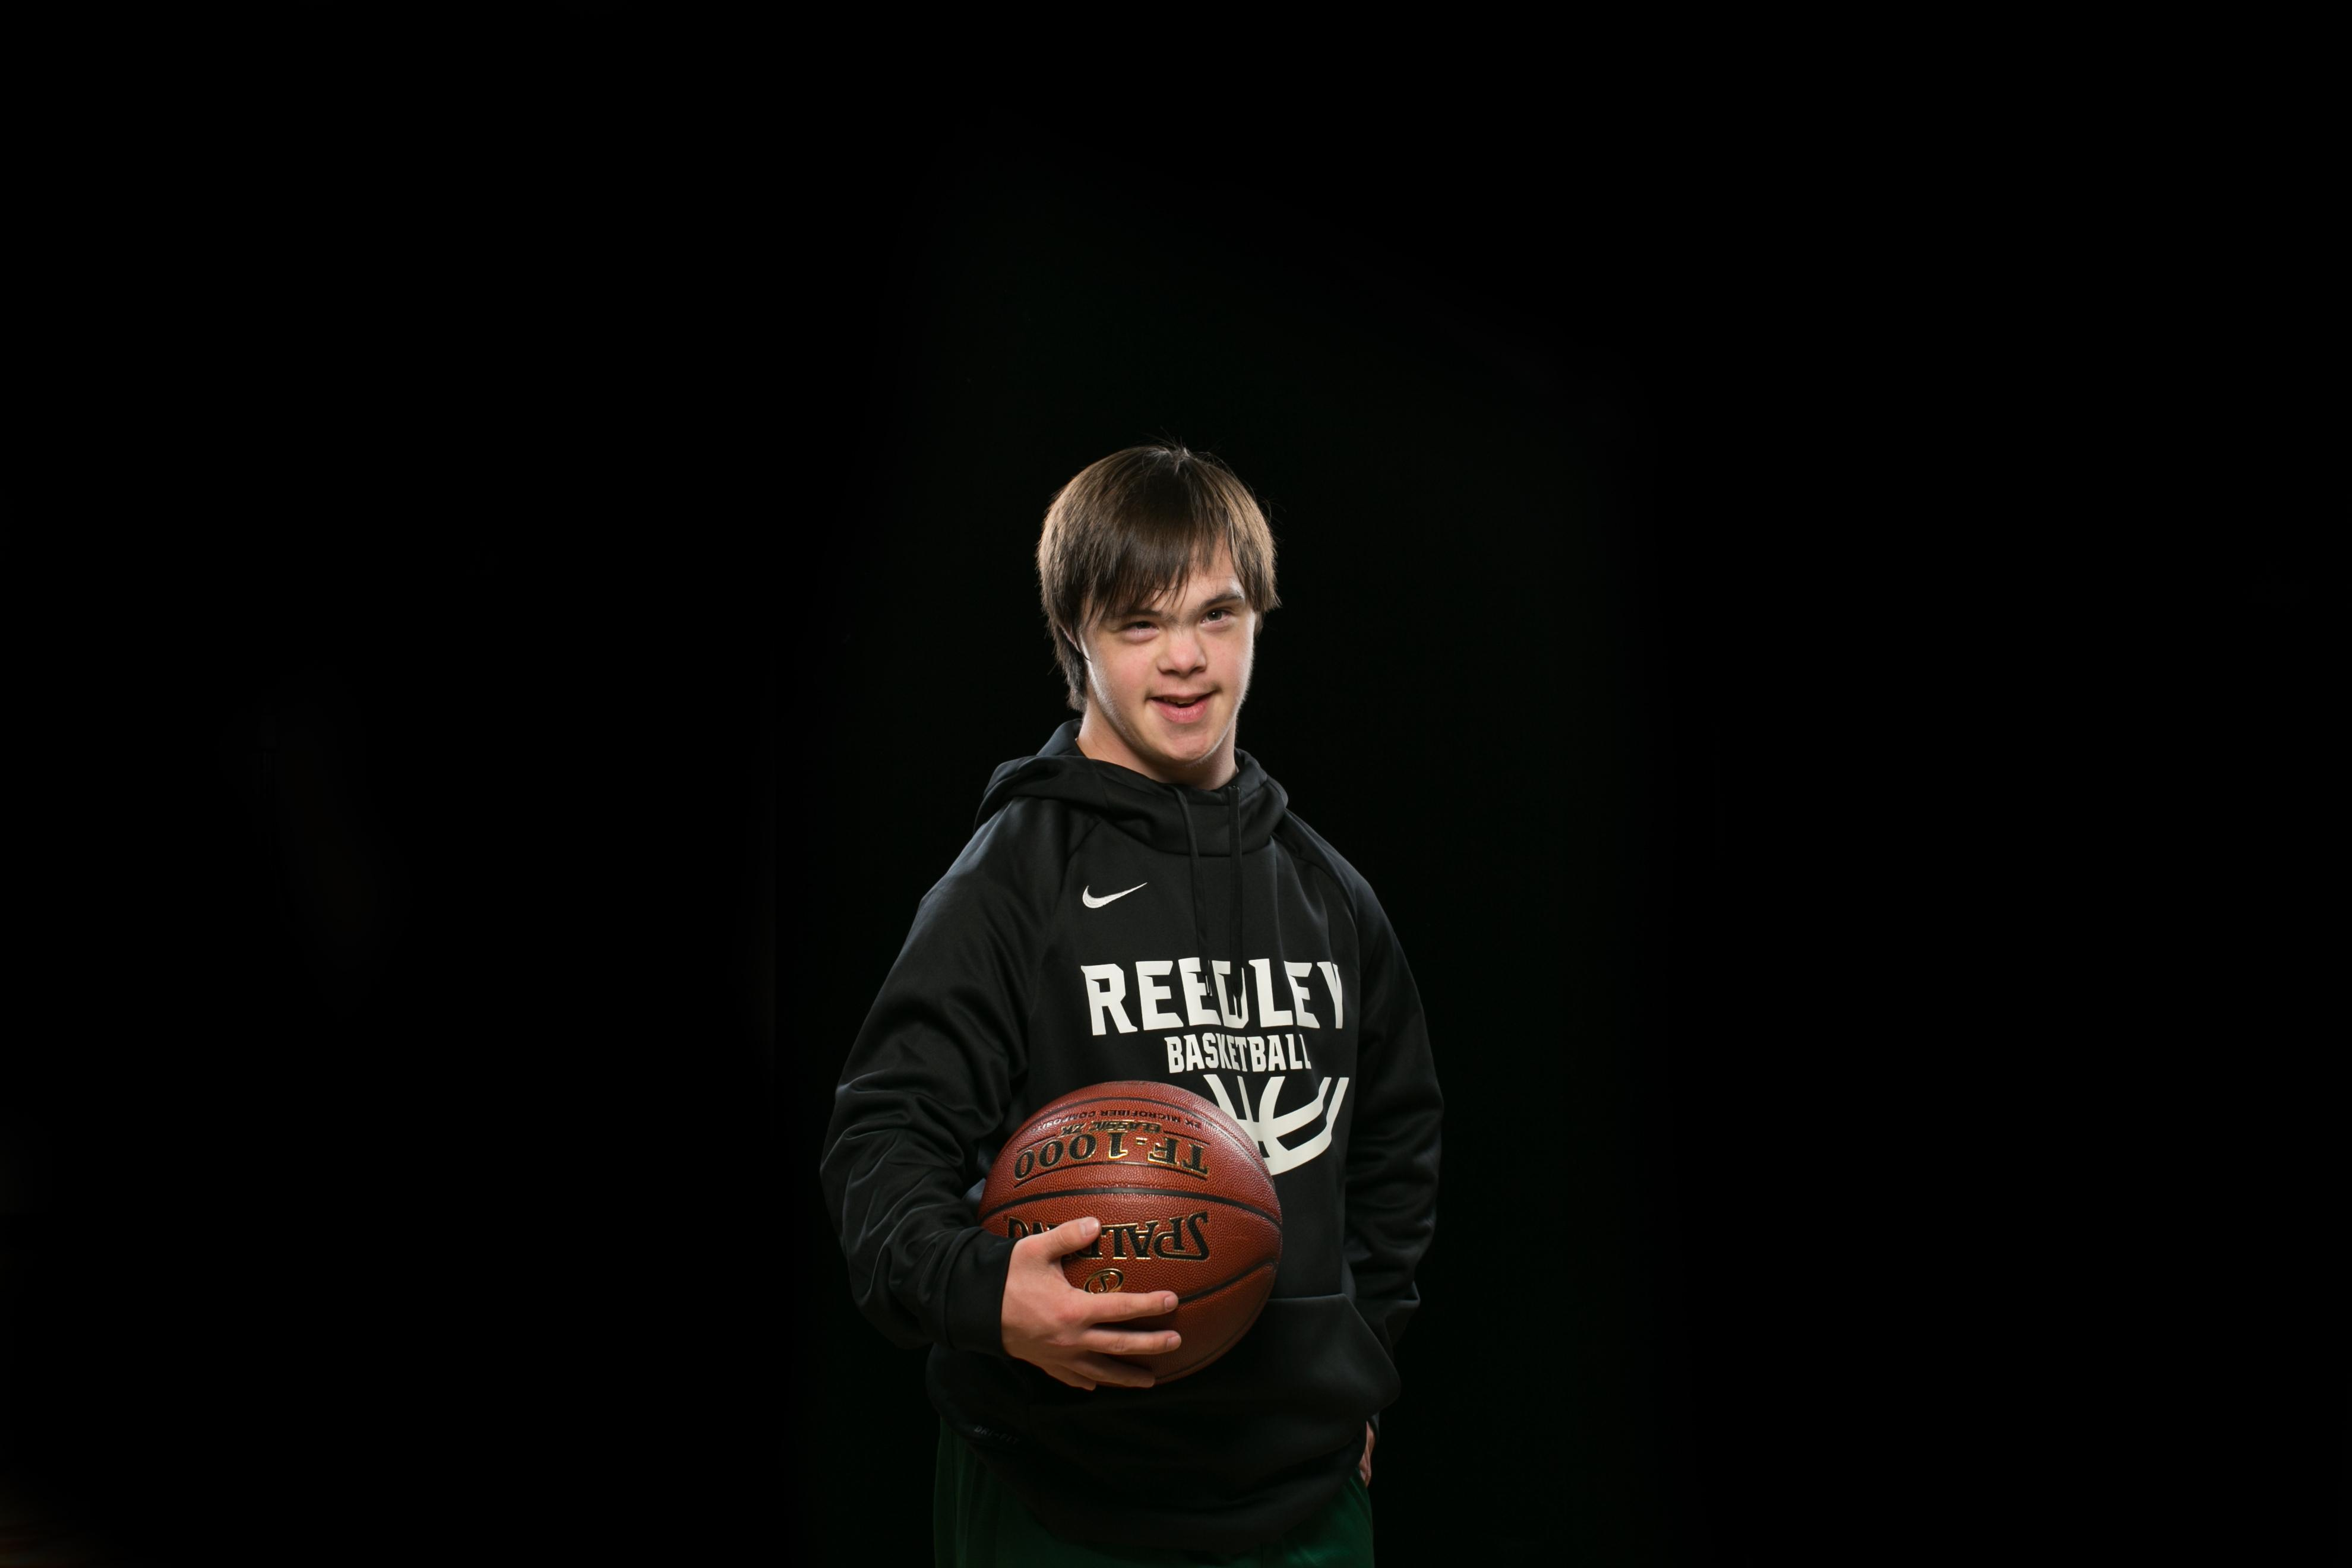 Jack Welsh has been a devoted member of the boys basketball team for three years. Thursday night, in the team's last home game, Jack received his first opportunity to play.<p></p>